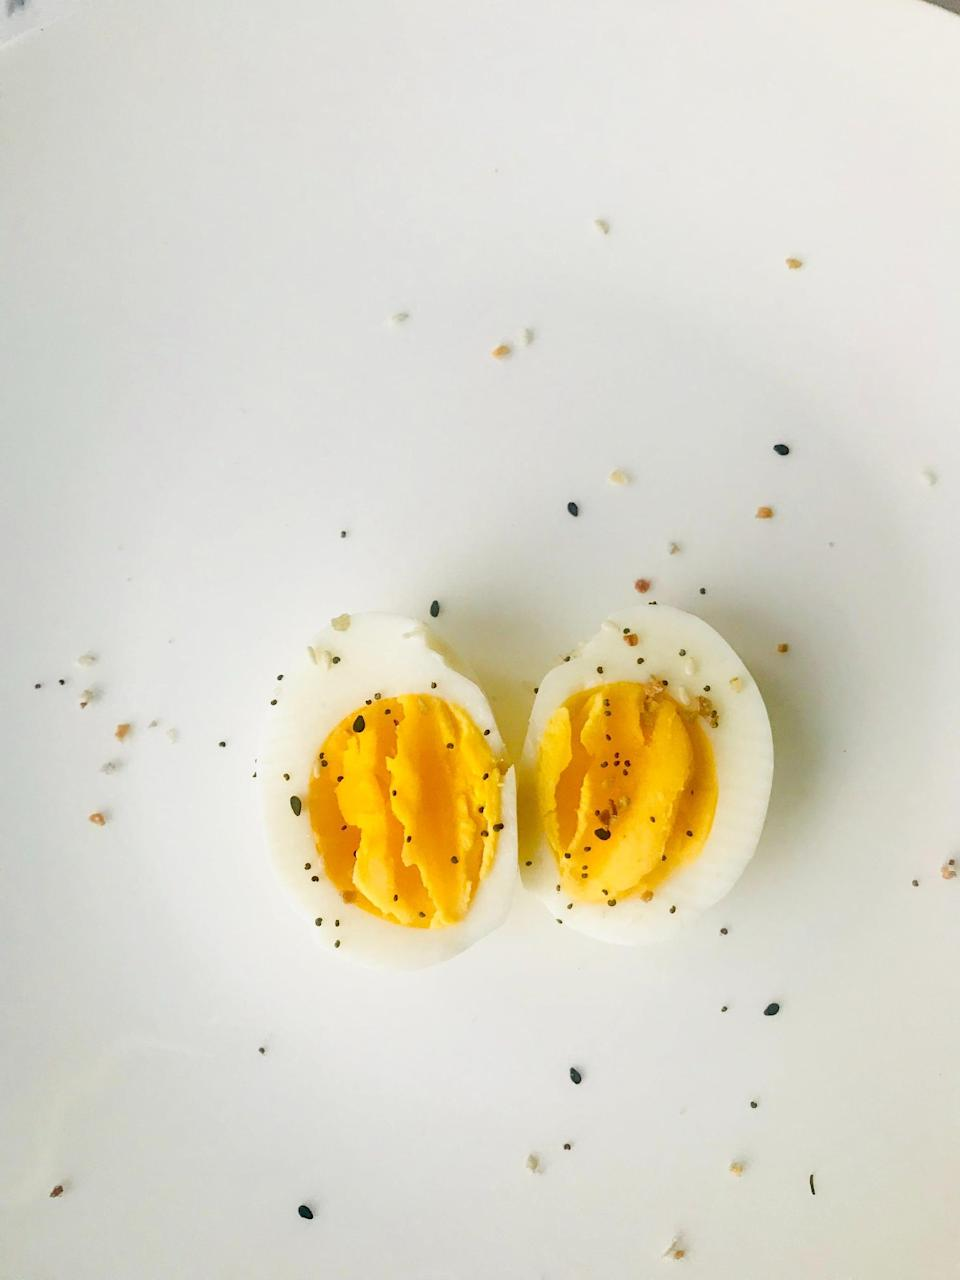 """<p>Laureen calls hard-boiled <a href=""""https://www.popsugar.com/fitness/is-it-ok-to-eat-eggs-every-day-48132041"""" class=""""link rapid-noclick-resp"""" rel=""""nofollow noopener"""" target=""""_blank"""" data-ylk=""""slk:eggs"""">eggs</a> """"a perfect protein,"""" and grocery stores like Trader Joe's have premade bags of them. They're versatile for breakfast and dinner (on toast! in salads! sprinkled with pepper!) and a much better option than dining-hall powdered eggs.</p>"""